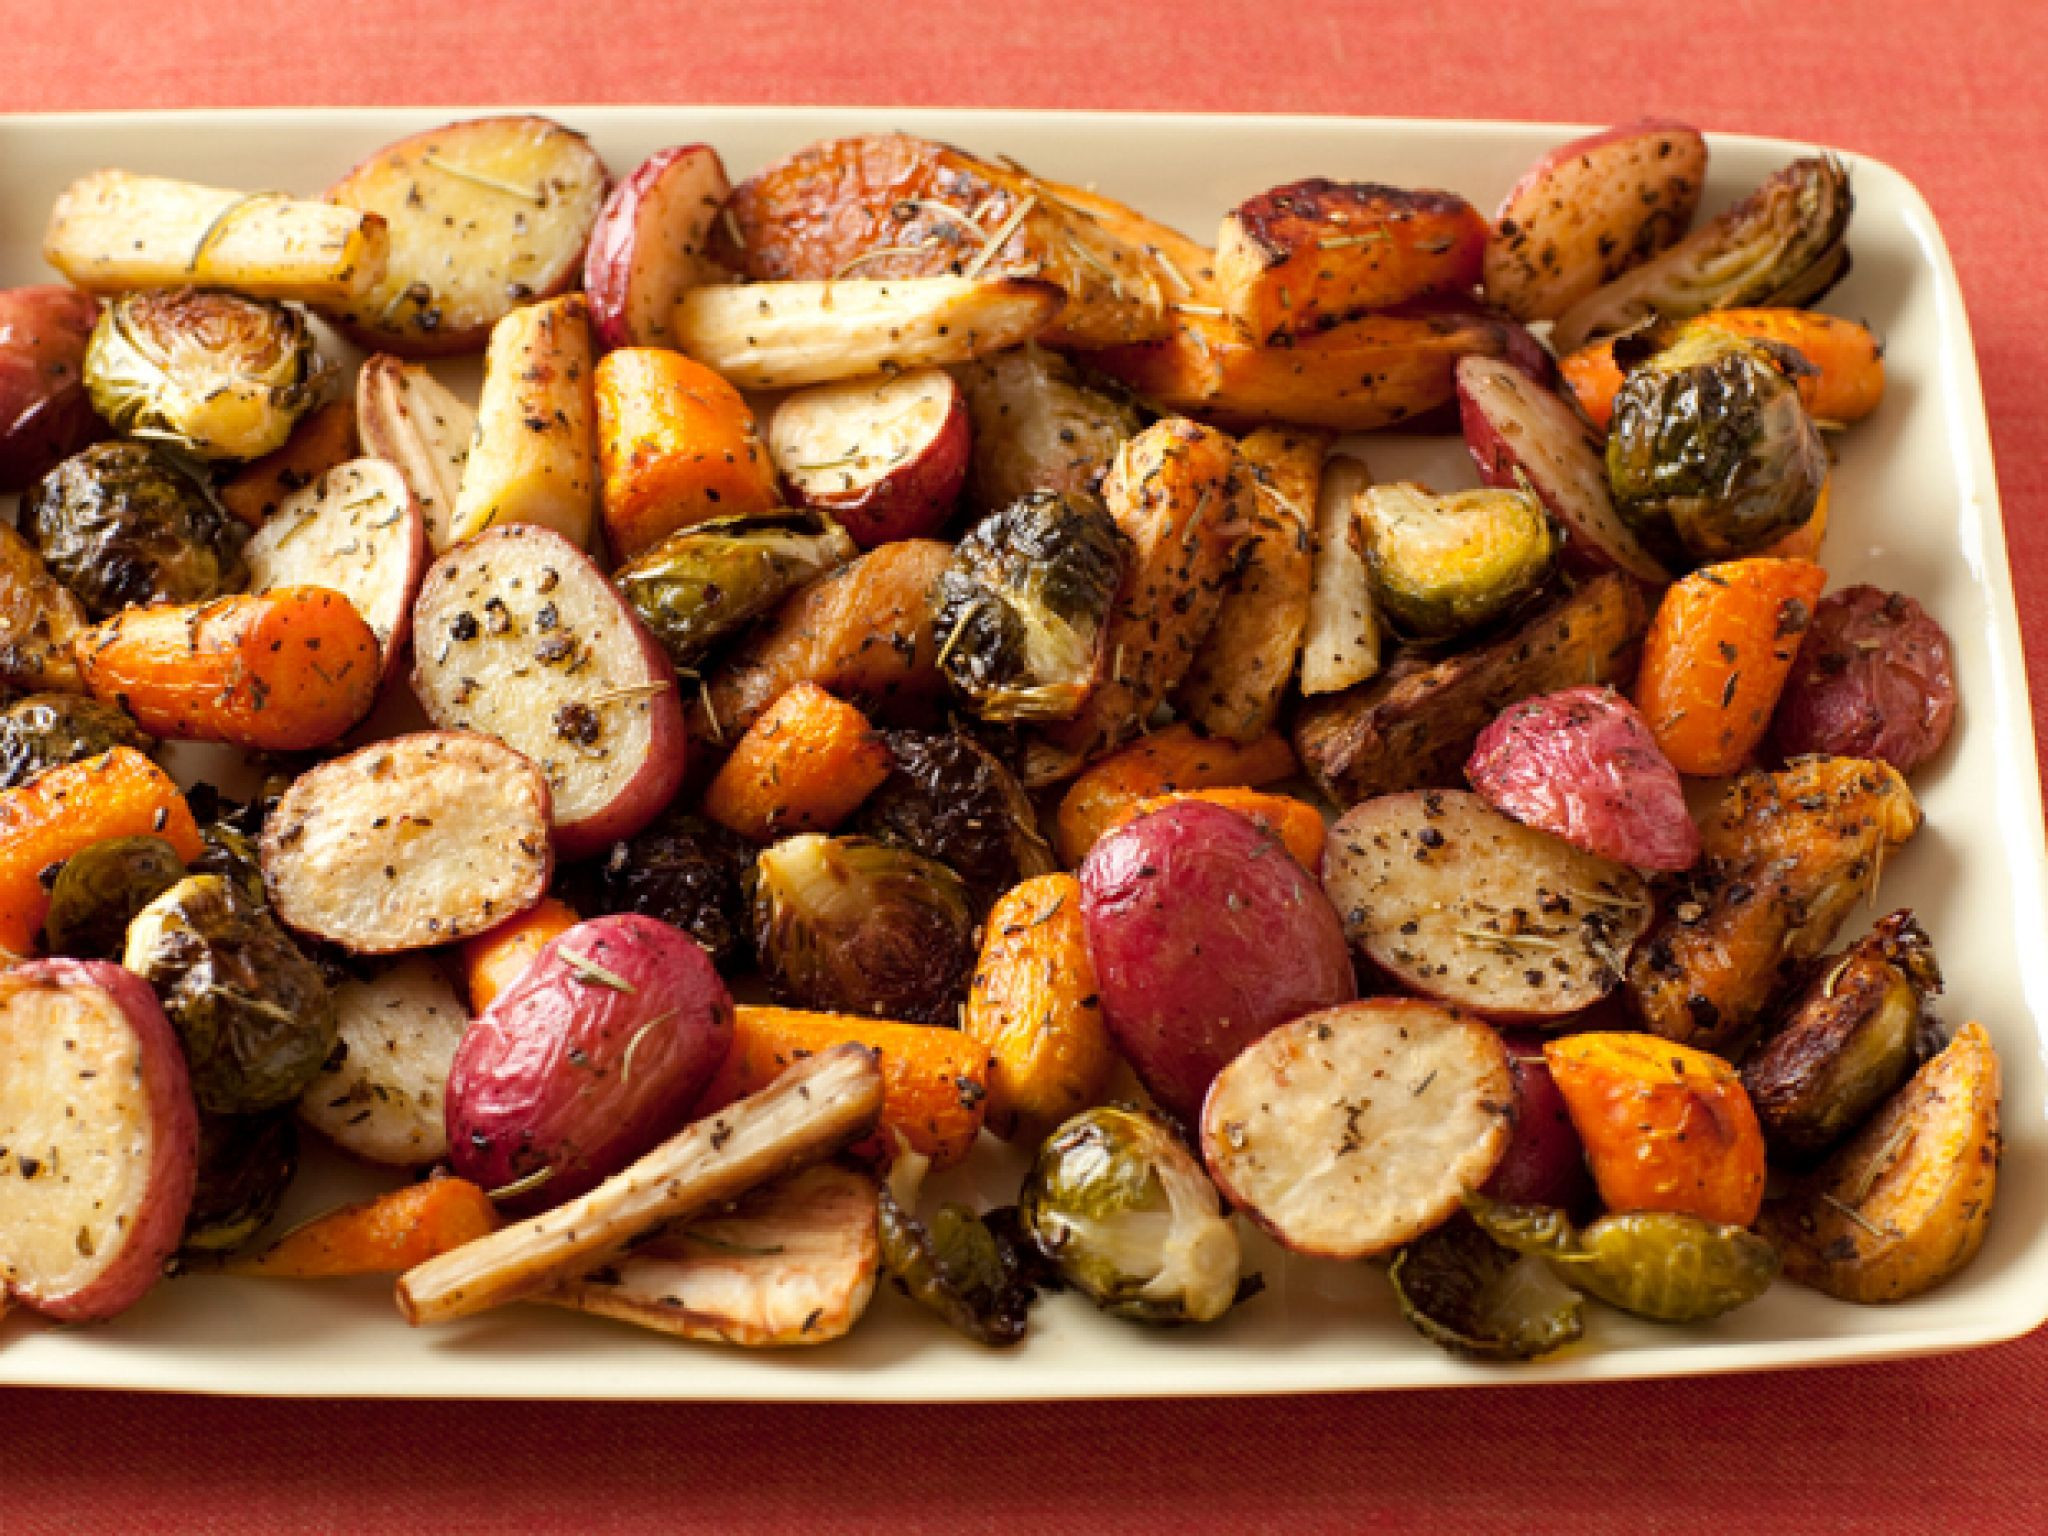 Roasted Vegetables Thanksgiving  100 Classic Thanksgiving Side Dish Recipes Food Network